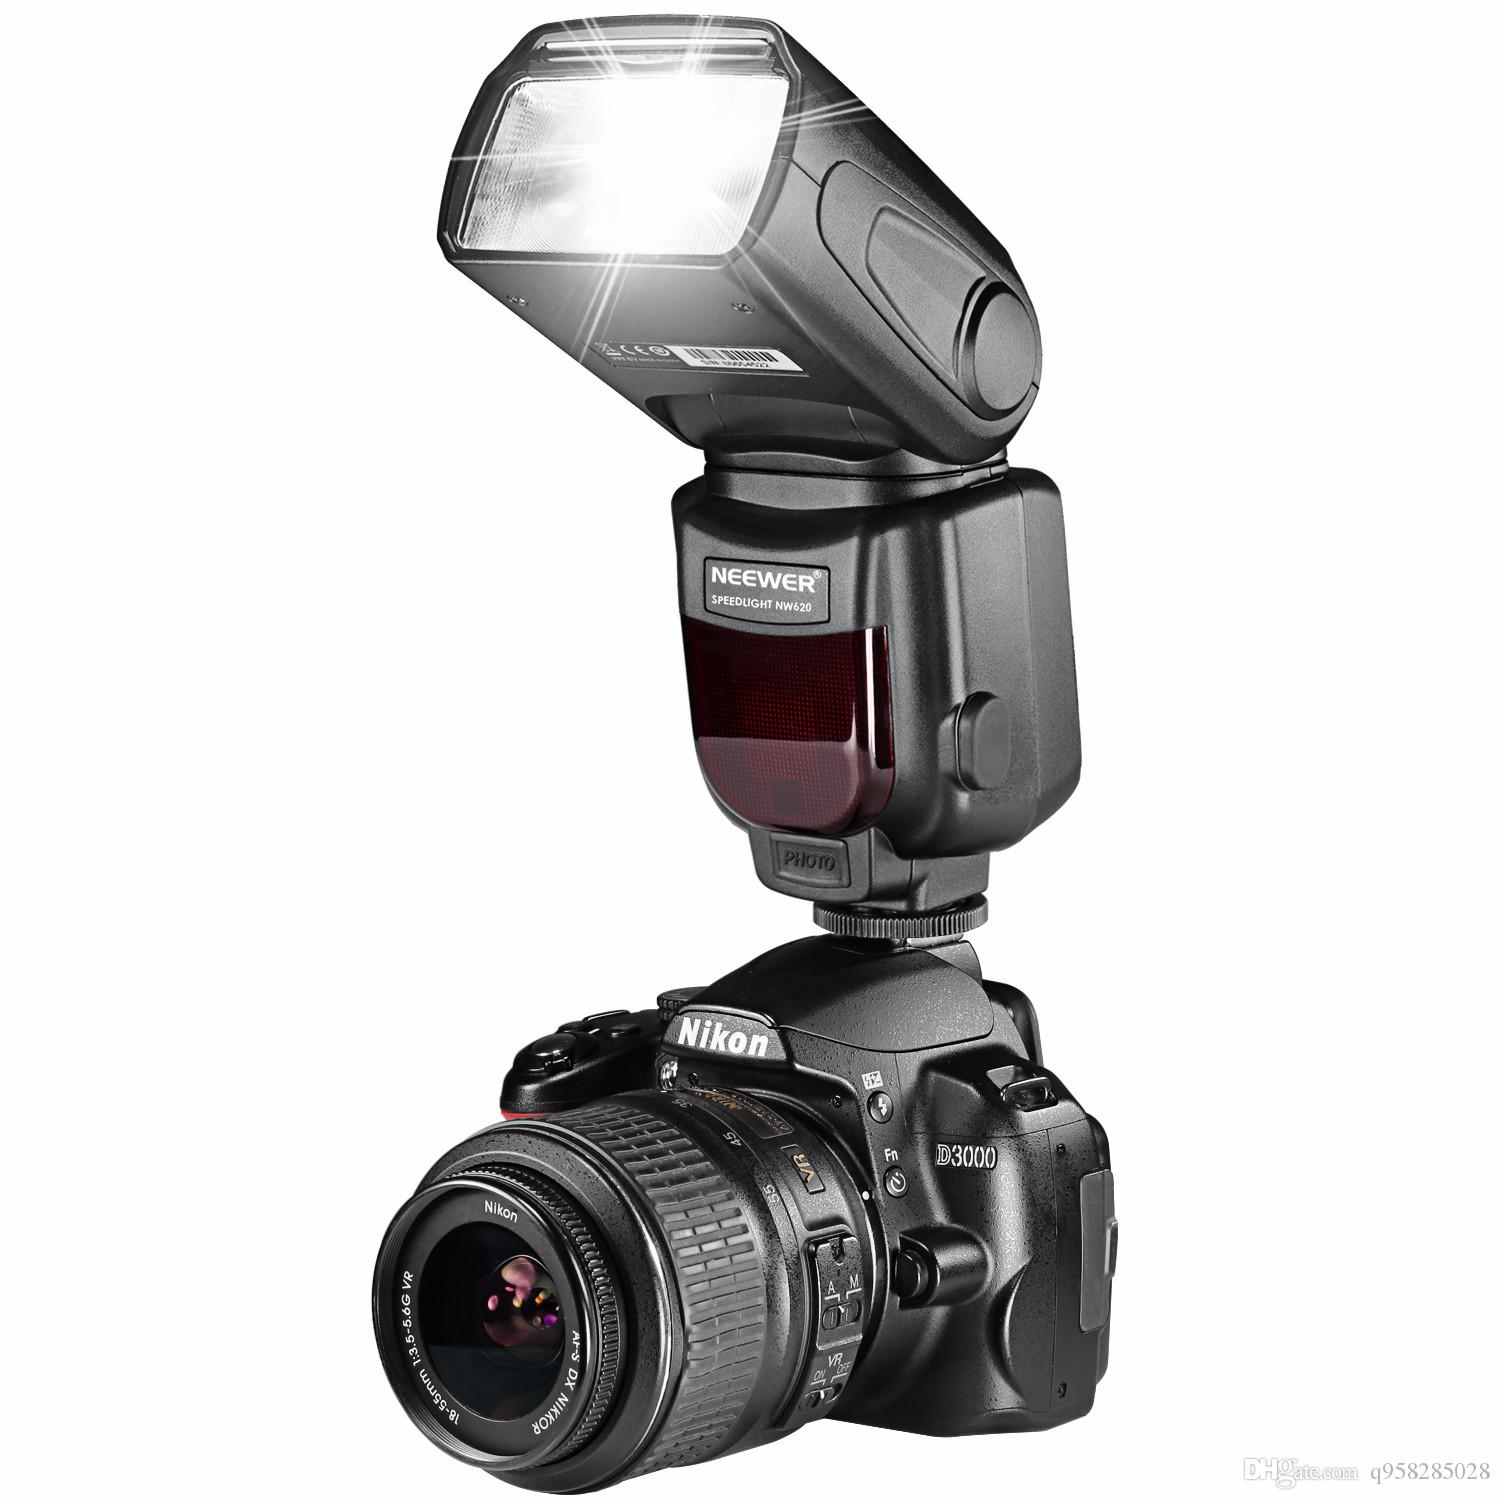 2019 Neewer Nw 620 Manual Flash Speedlite With Lcd Display For Canon Nikonand Other Dslr Cameras